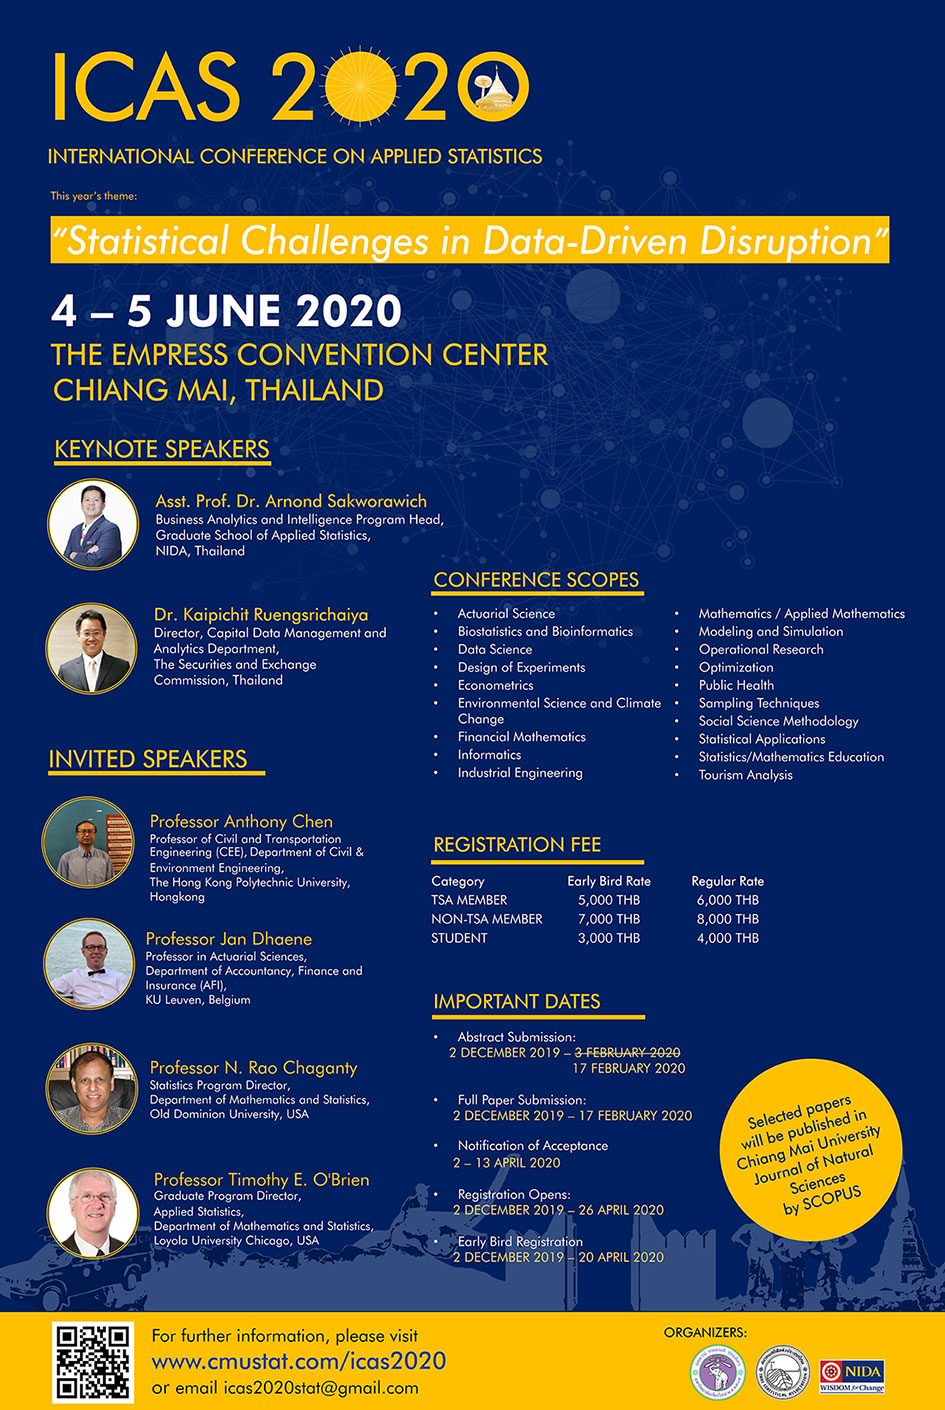 International Conference on Applied Statistics 2020